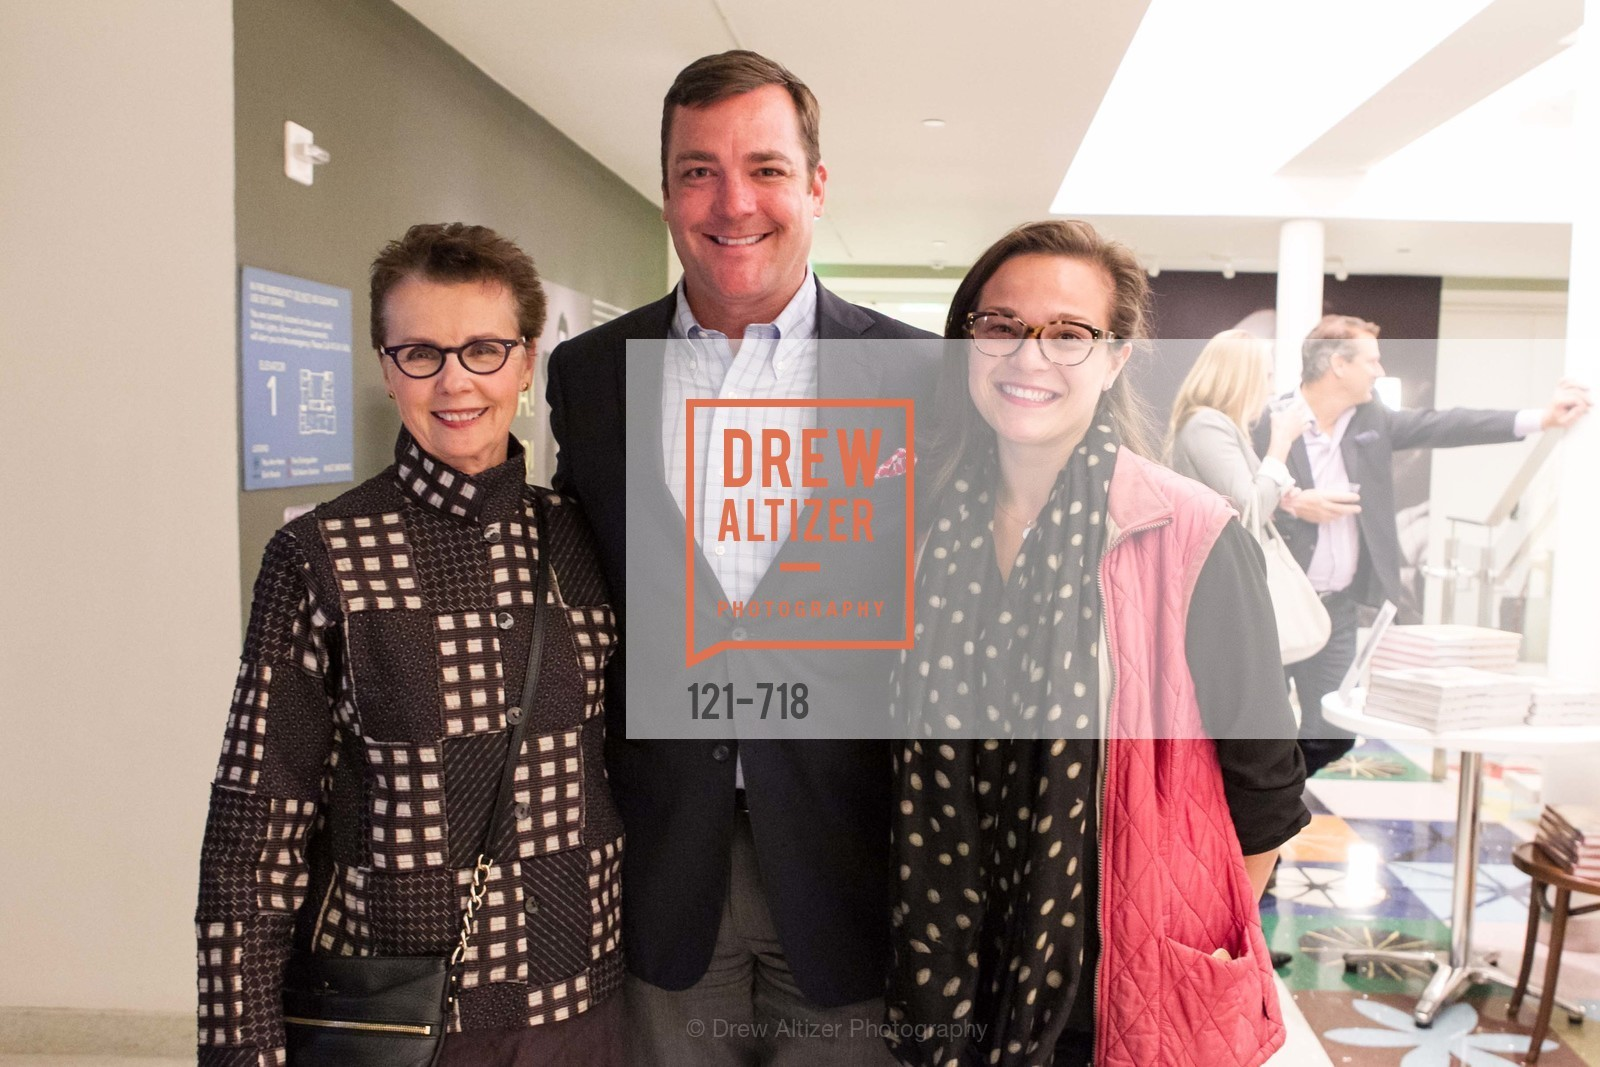 Kathleen Taylor, Jack Ryder, Josephine Arader, ICAA Hosts NICKY HASLAM'S Lecture and Book Signing, US, May 12th, 2015,Drew Altizer, Drew Altizer Photography, full-service agency, private events, San Francisco photographer, photographer california